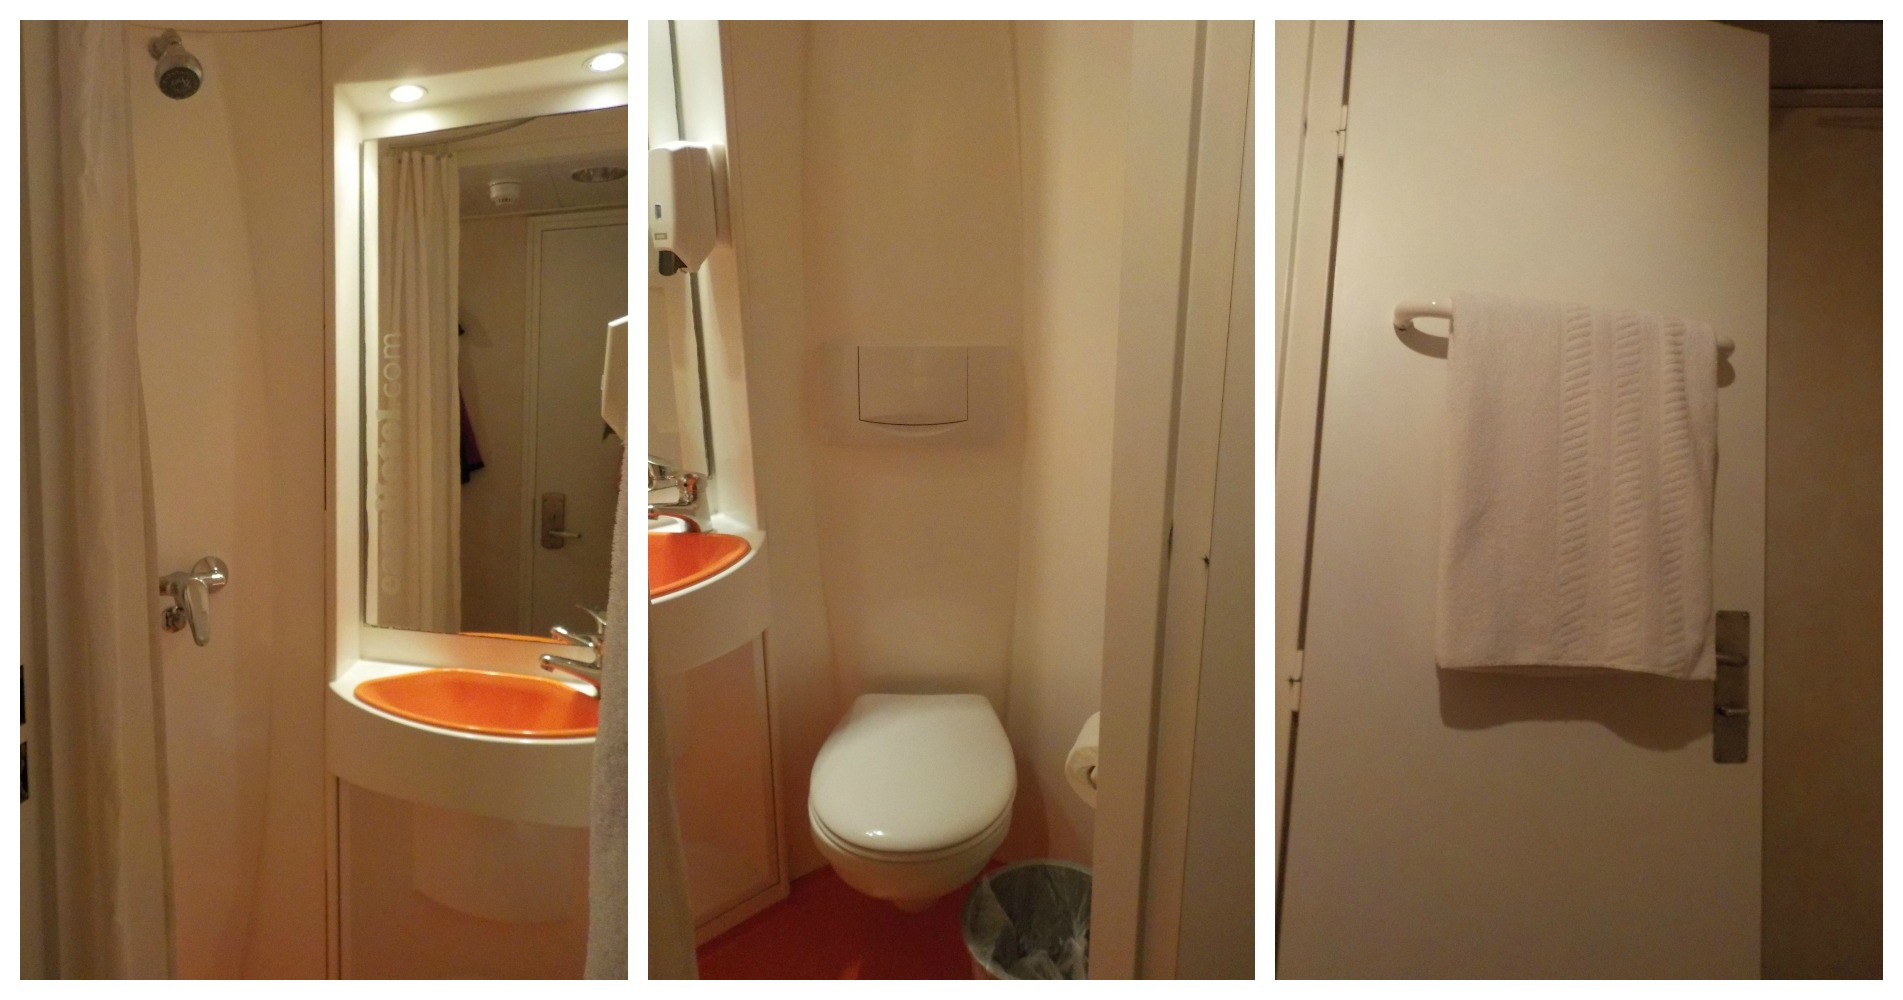 EasyHotel Kensington bathroom